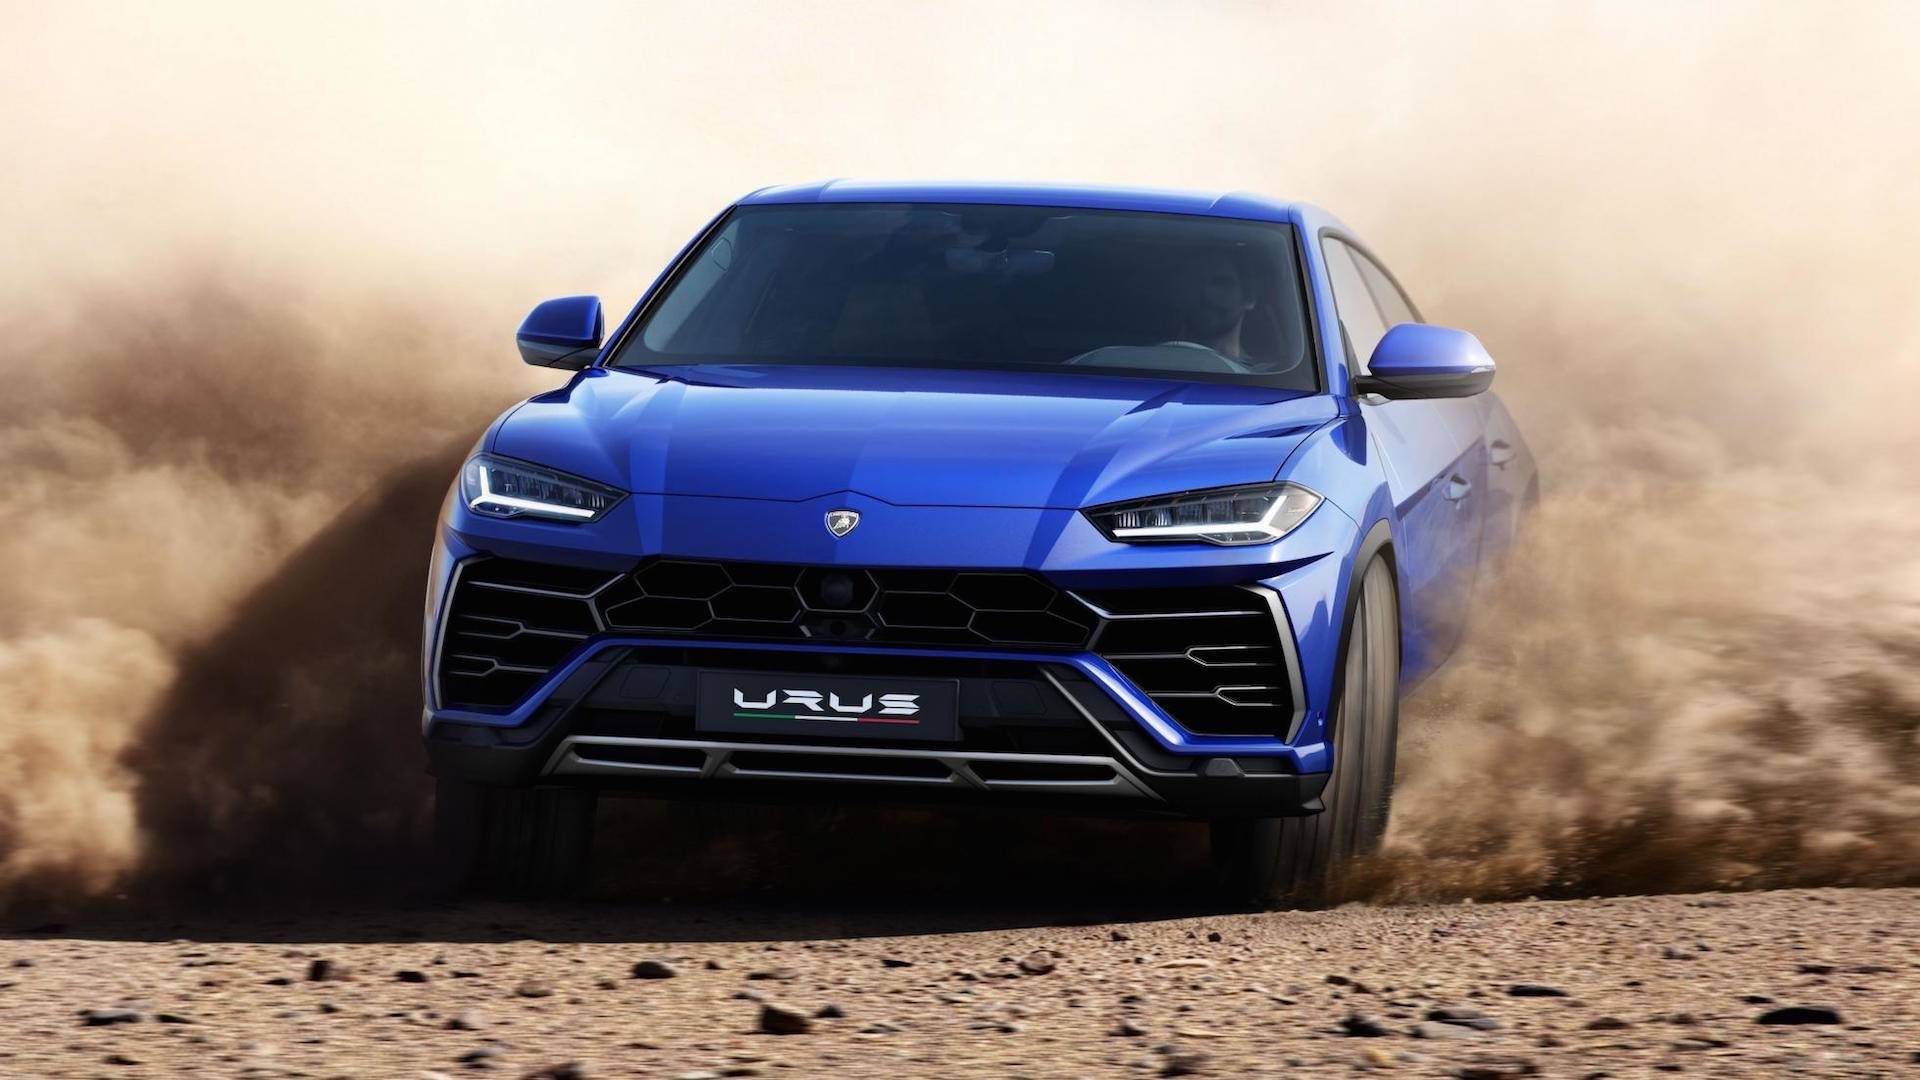 Lamborghini Urus Off-Road Package